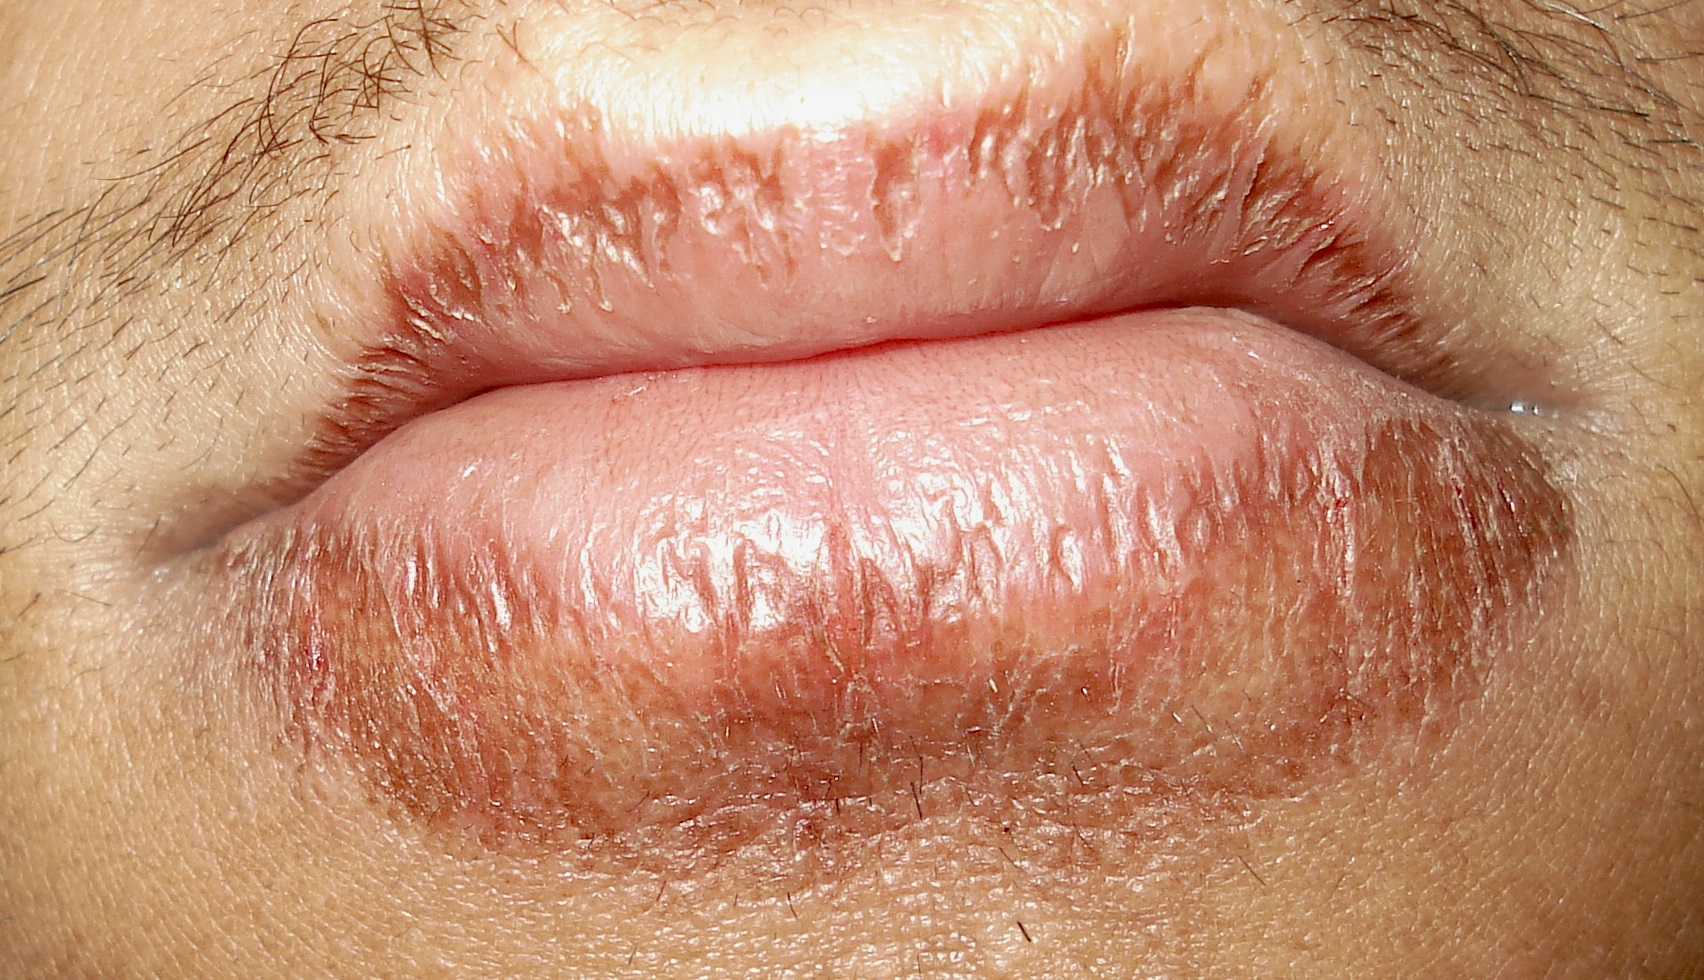 Home Remedies for Chapped lips | Top 10 Home Remedies